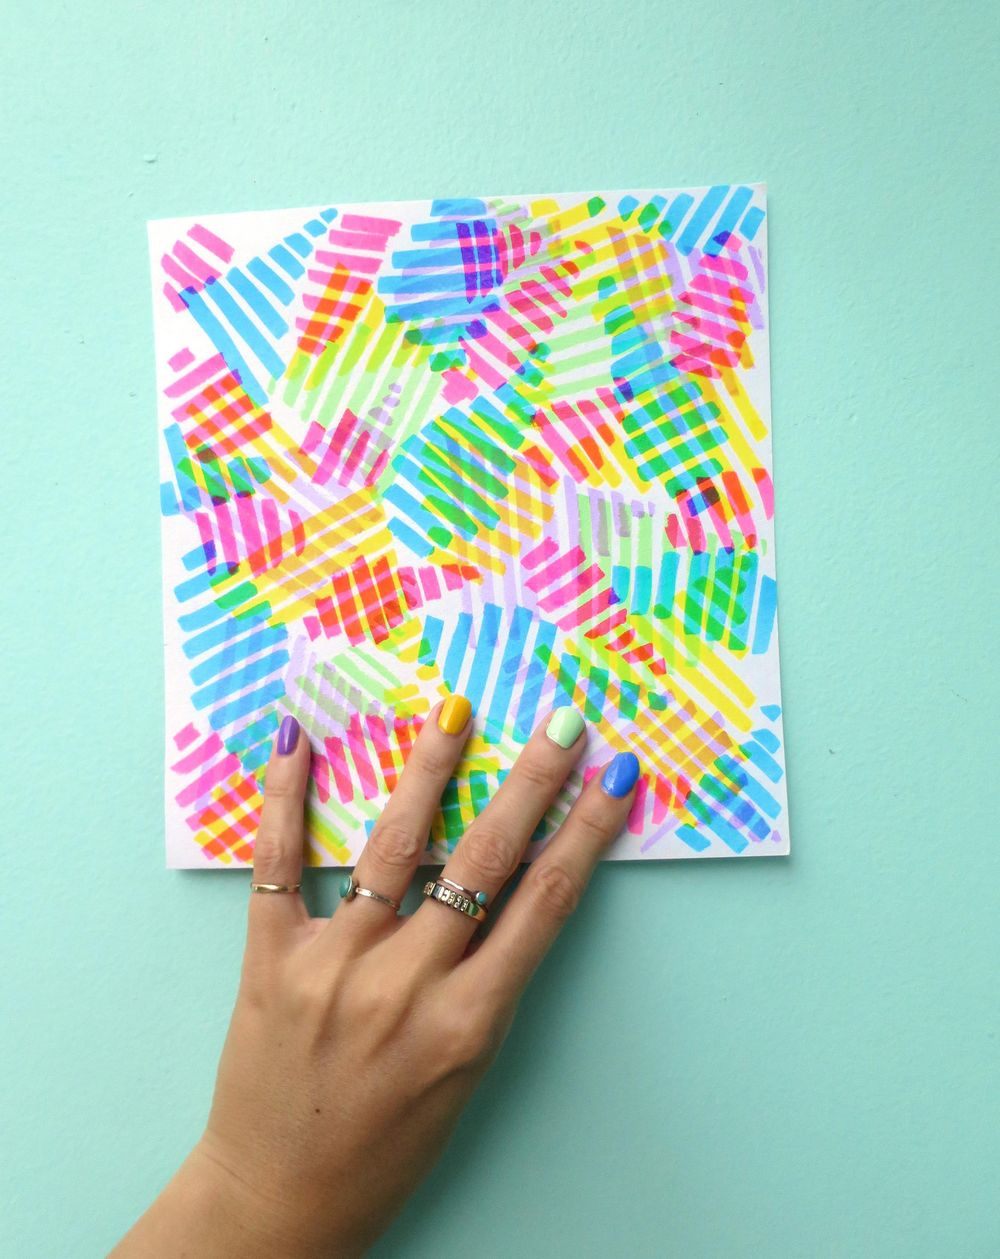 Abstract Rainbows – inspired by my nail polish! - image 1 - student project